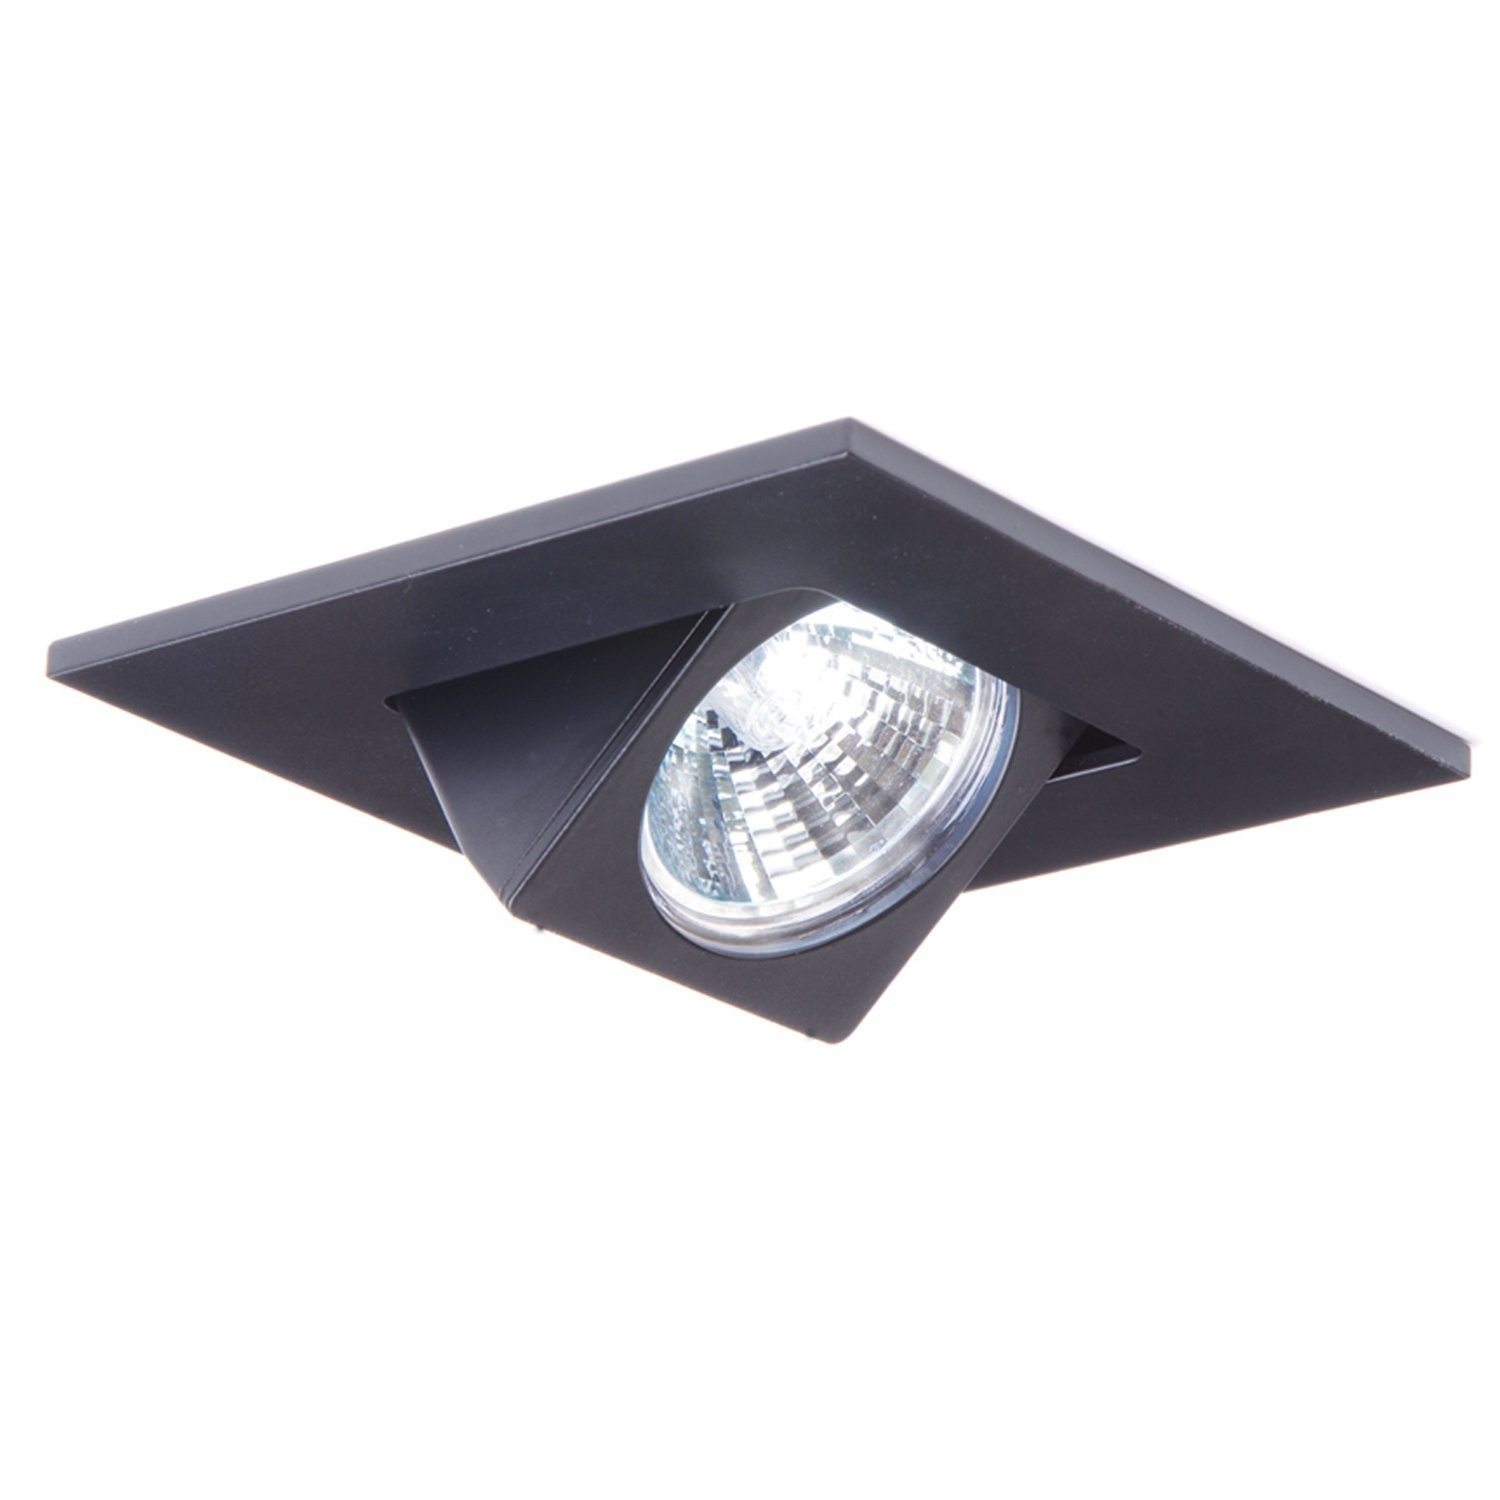 Halo 3013BK Recessed Lighting Trim 3  Adjustable Gimbal Square Trim - Black  sc 1 st  Westside Wholesale & Halo 3013BK Recessed Lighting Trim 3